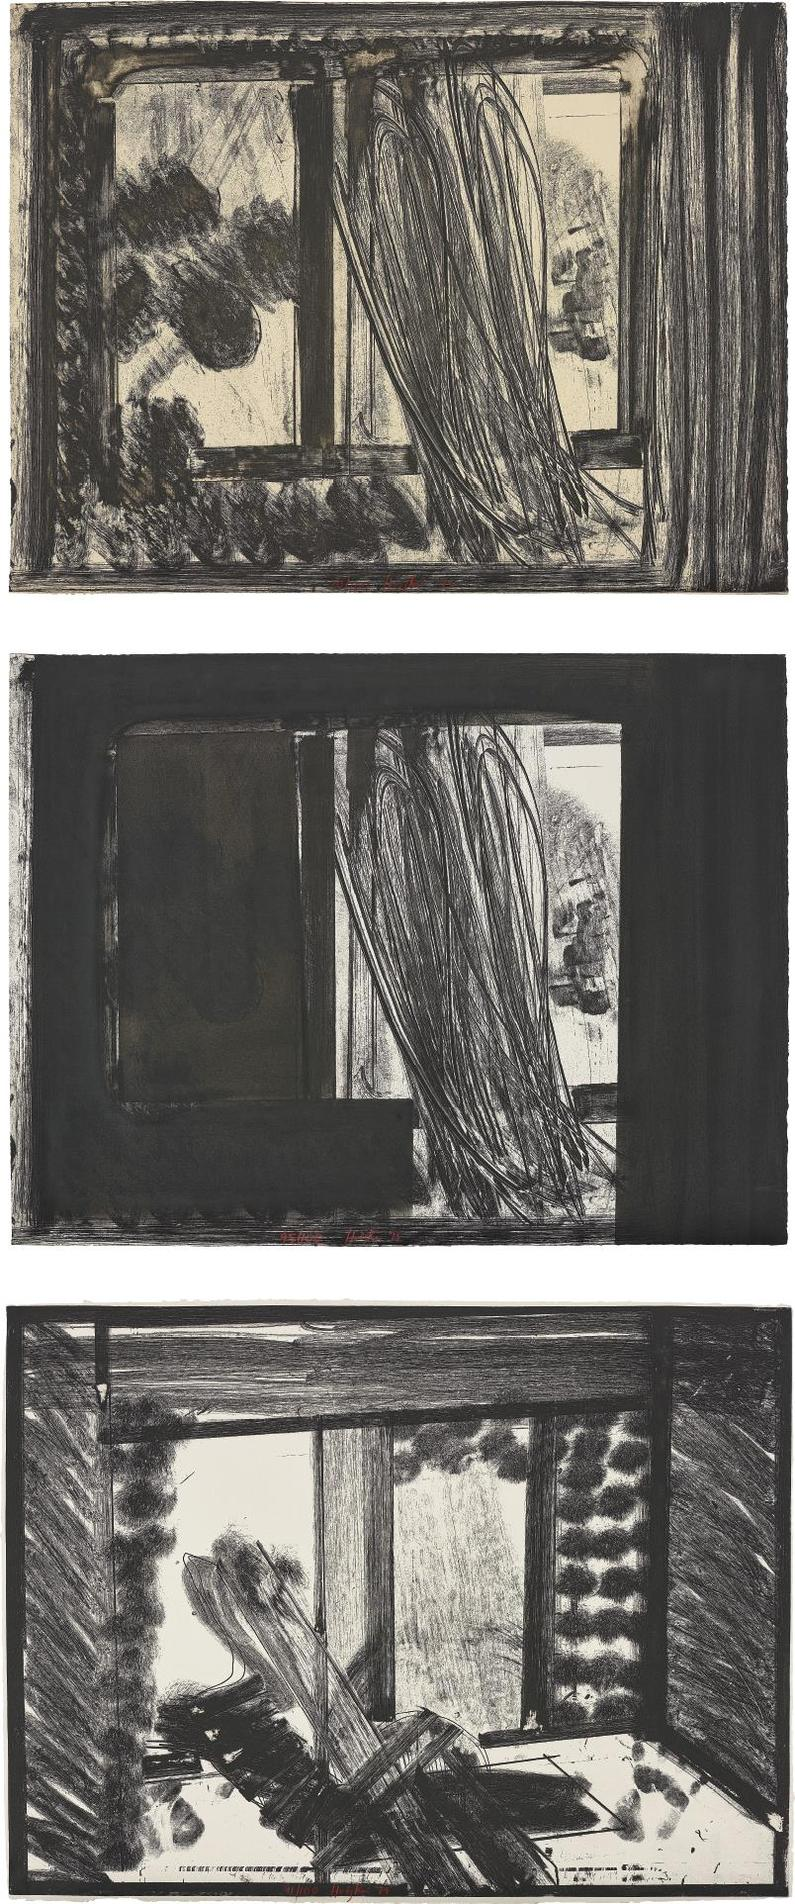 Howard Hodgkin-In The Museum Of Modern Art: Three Plates-1979